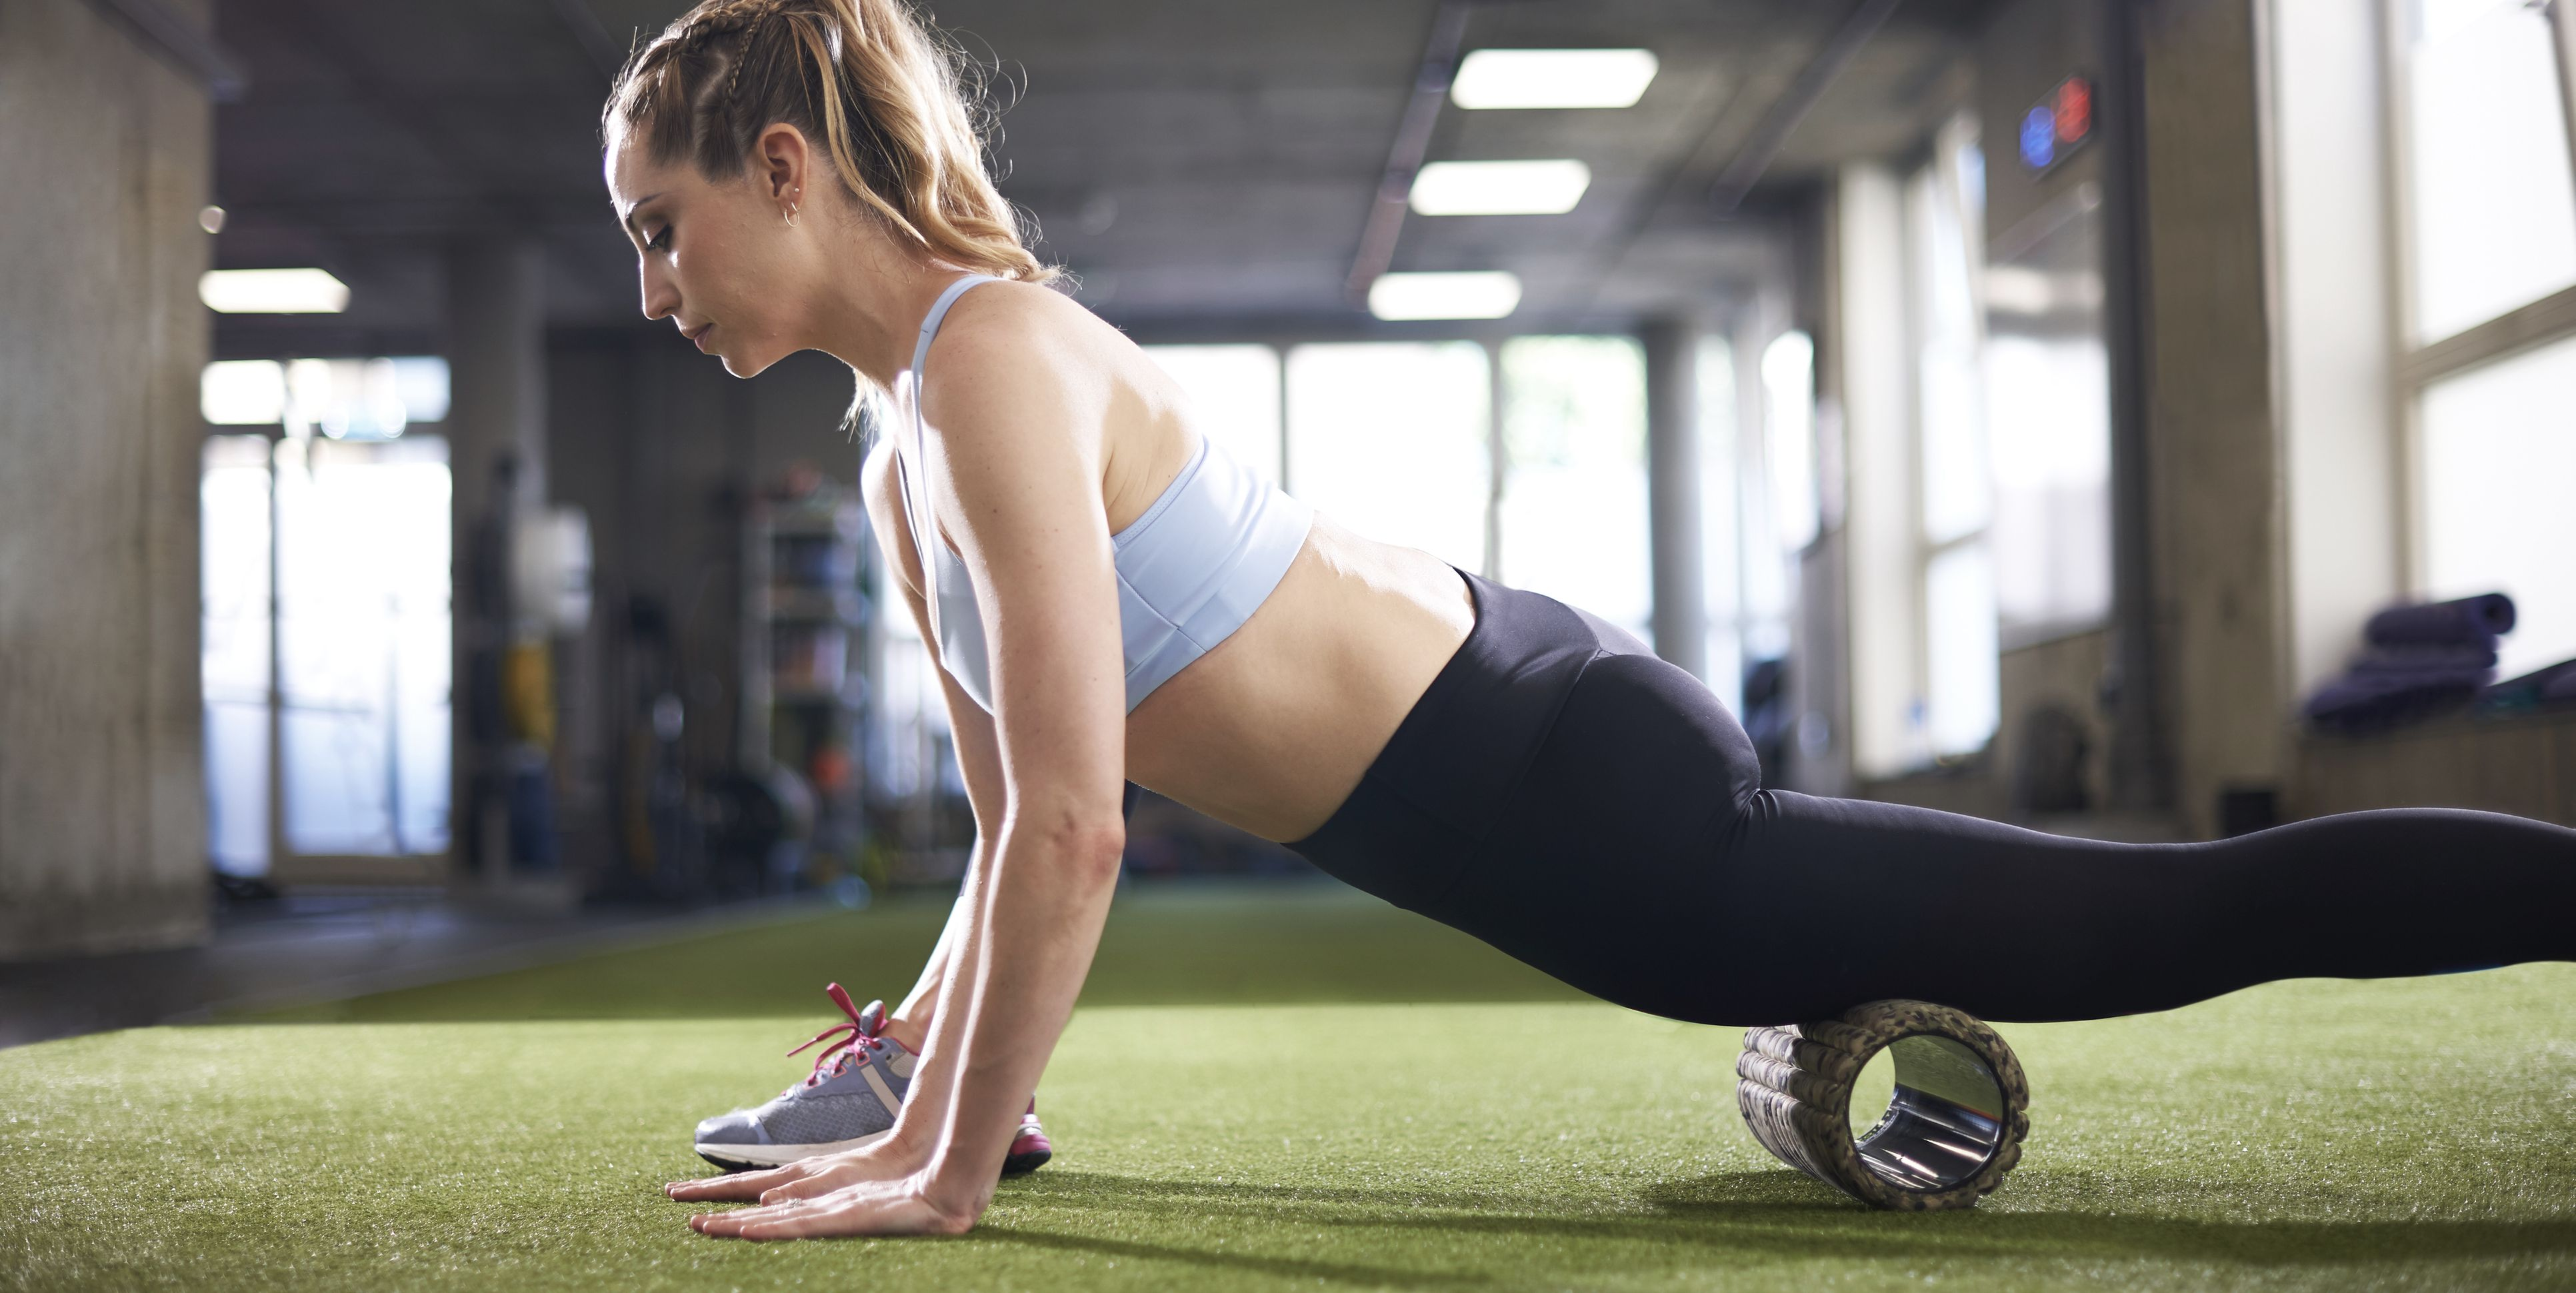 30 Creative Foam Roller Exercises You Probably Haven't Tried Yet